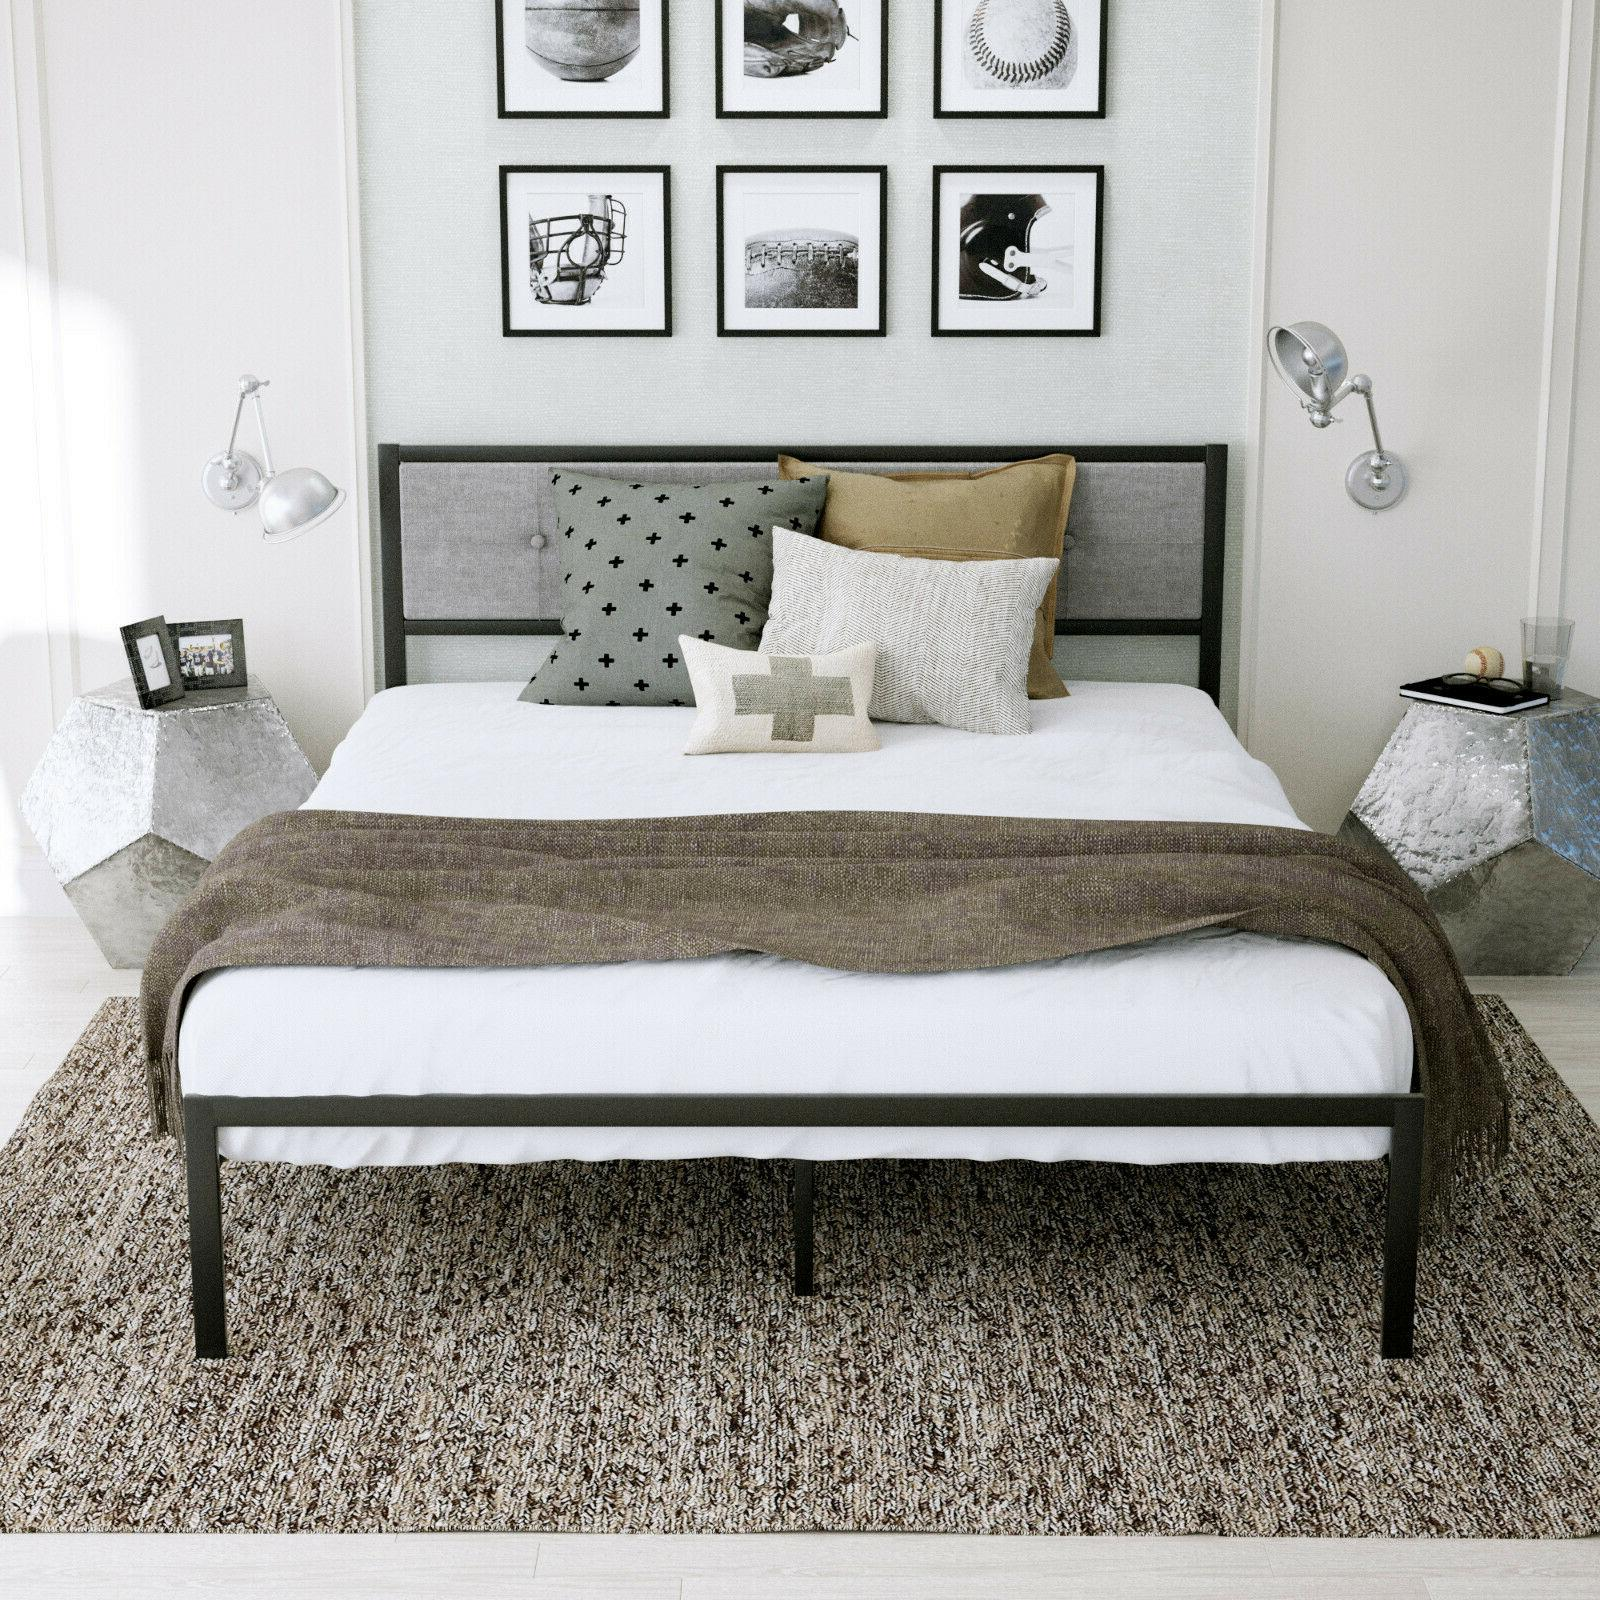 Twin/Full/Queen With Drak Gray Upholstery headboard